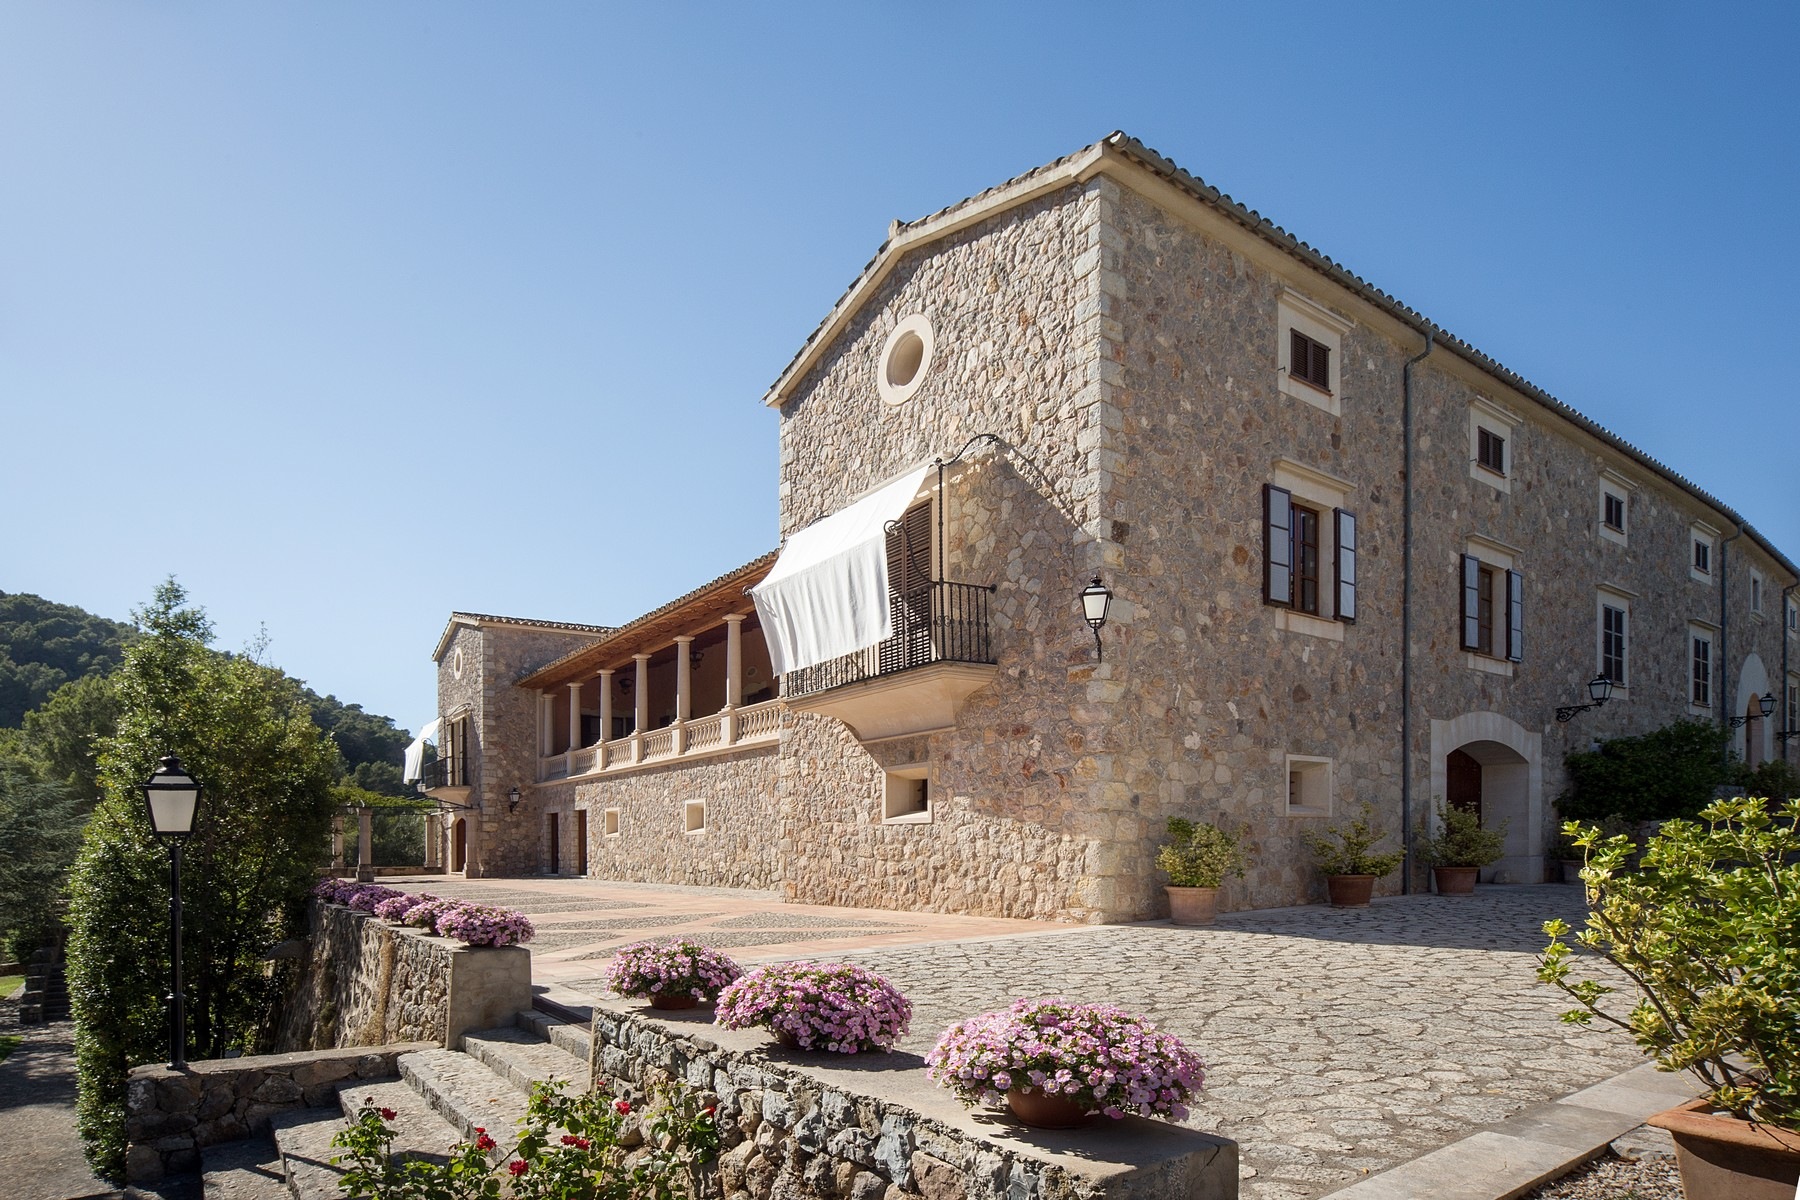 Single Family Home for Sale at Unique Majorcan Rural Estate in Puigpunyent Puigpunyent, Mallorca, 07195 Spain